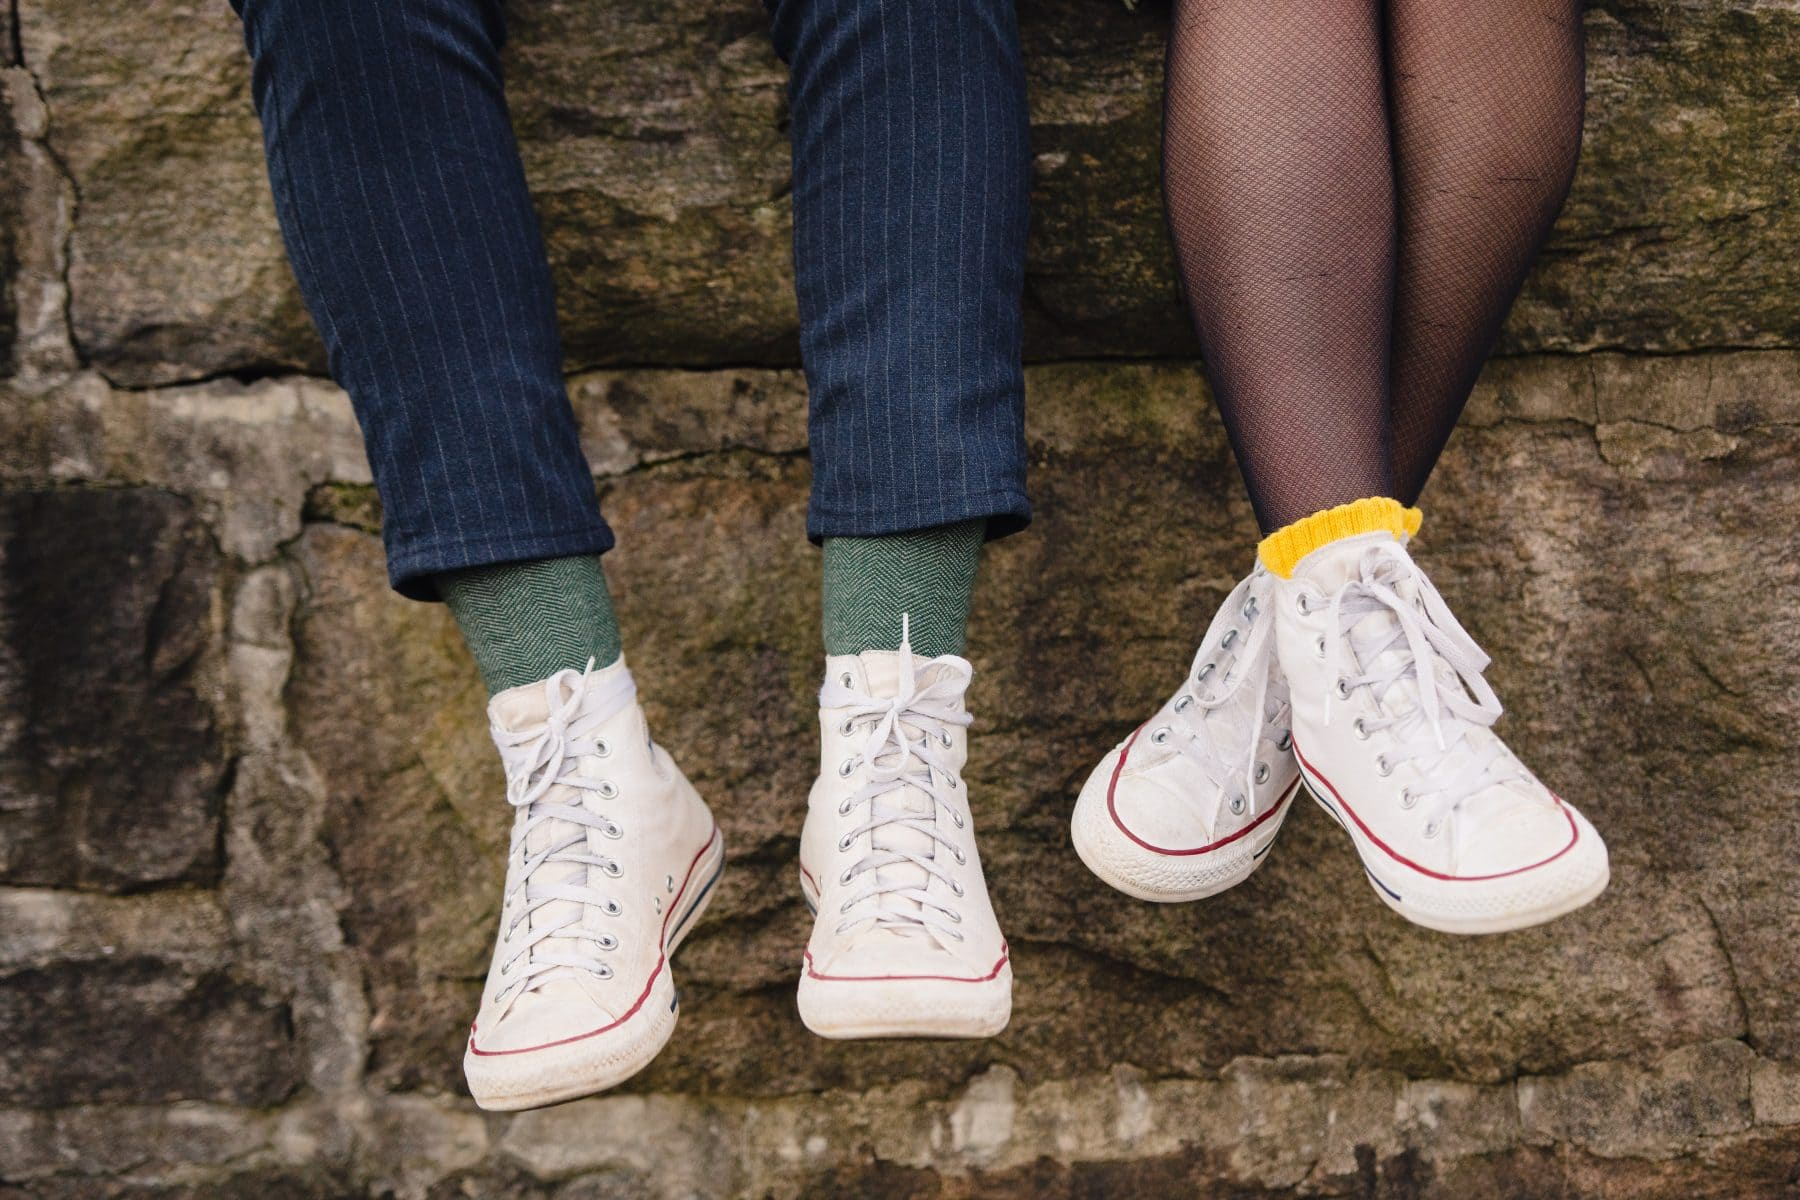 Couples' legs with white snickers and funny socks